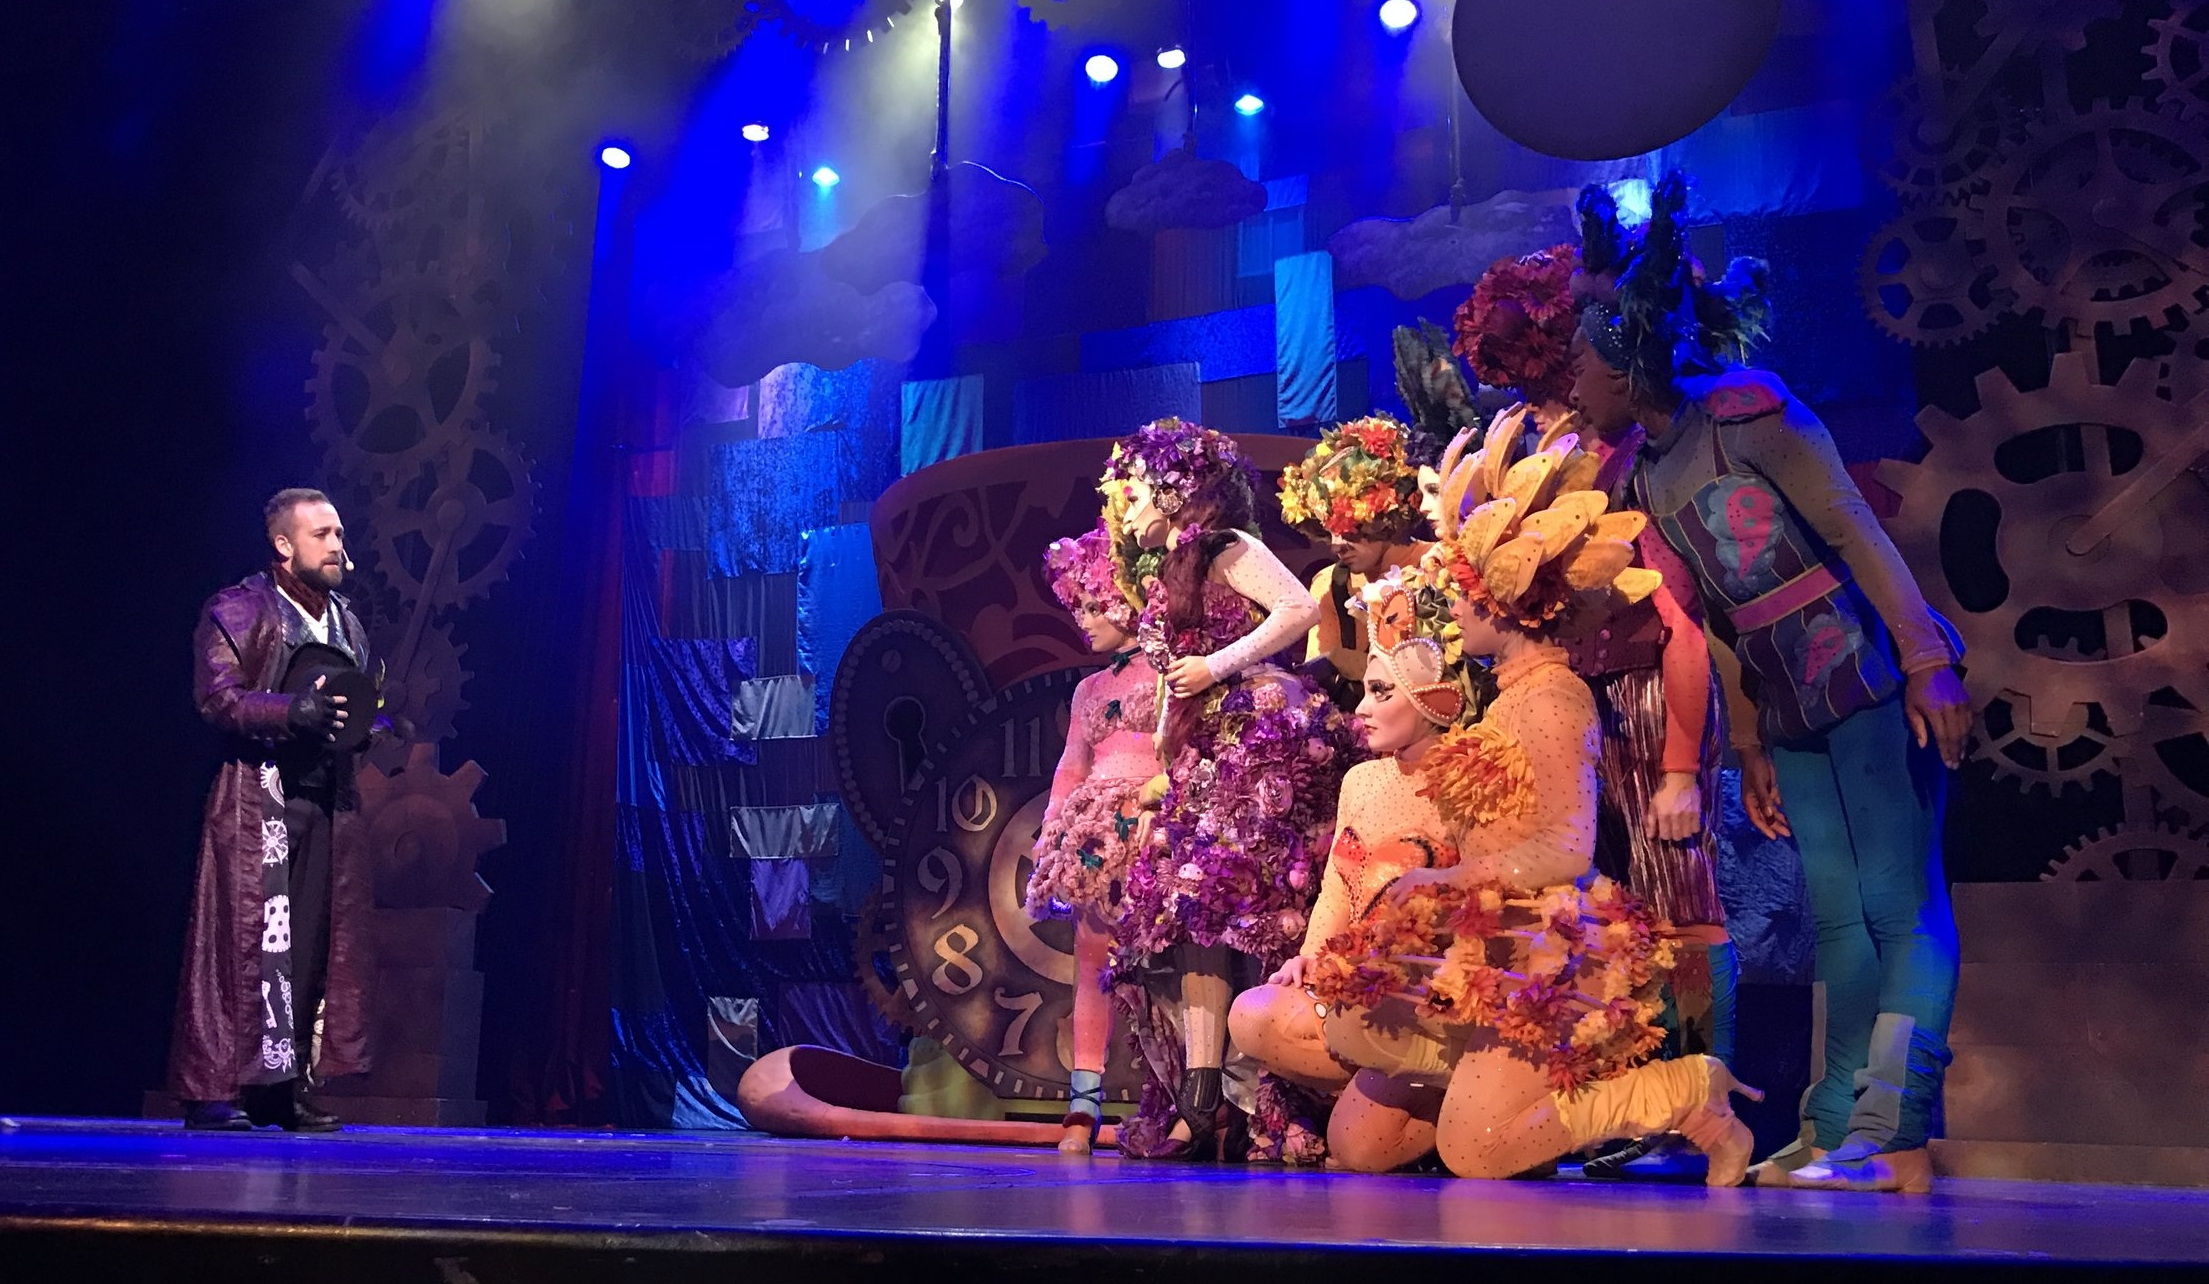 A glimpse of the fantastic productions on board Celebrity Eclipse.